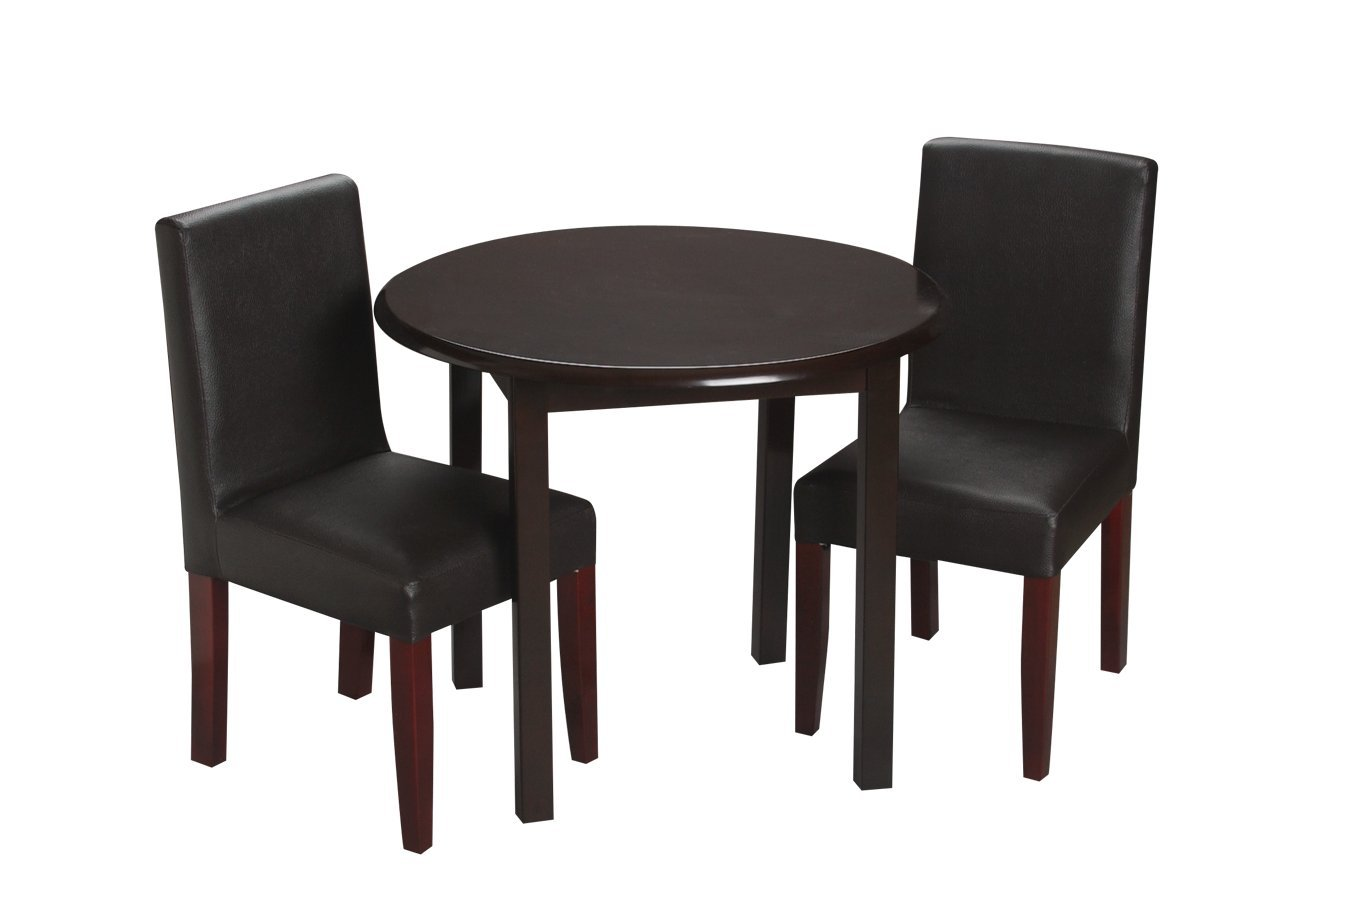 Gift Mark Children's Round Table with 2 Matching Completely Upholstered Chairs, Espresso